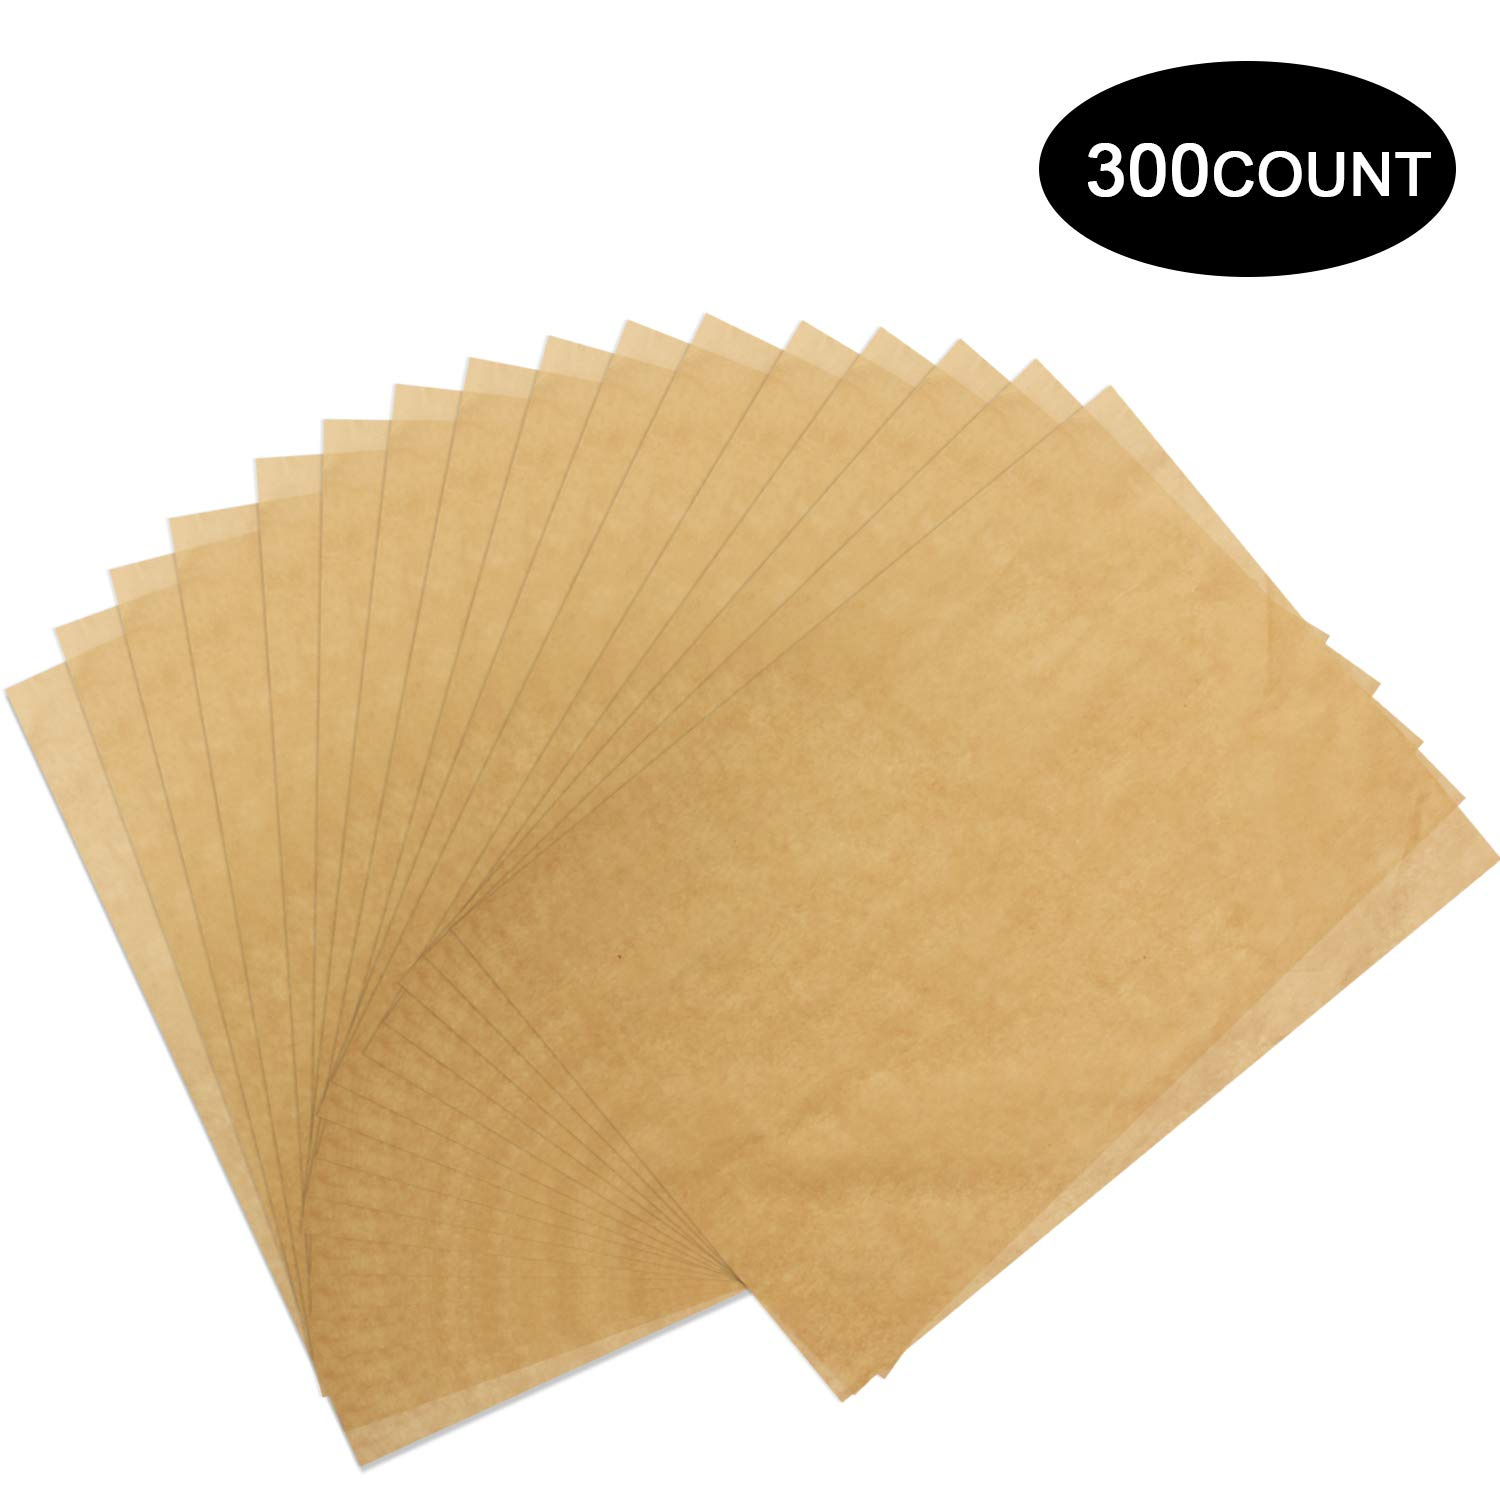 300 Pcs Parchment Paper Sheets, OAMCEG 12x16'' No Chemical Non-Stick Unbleached Precut Parchment Paper for Baking Grilling Air Fryer Steaming Bread Cup Cake Cookie and More by OAMCEG